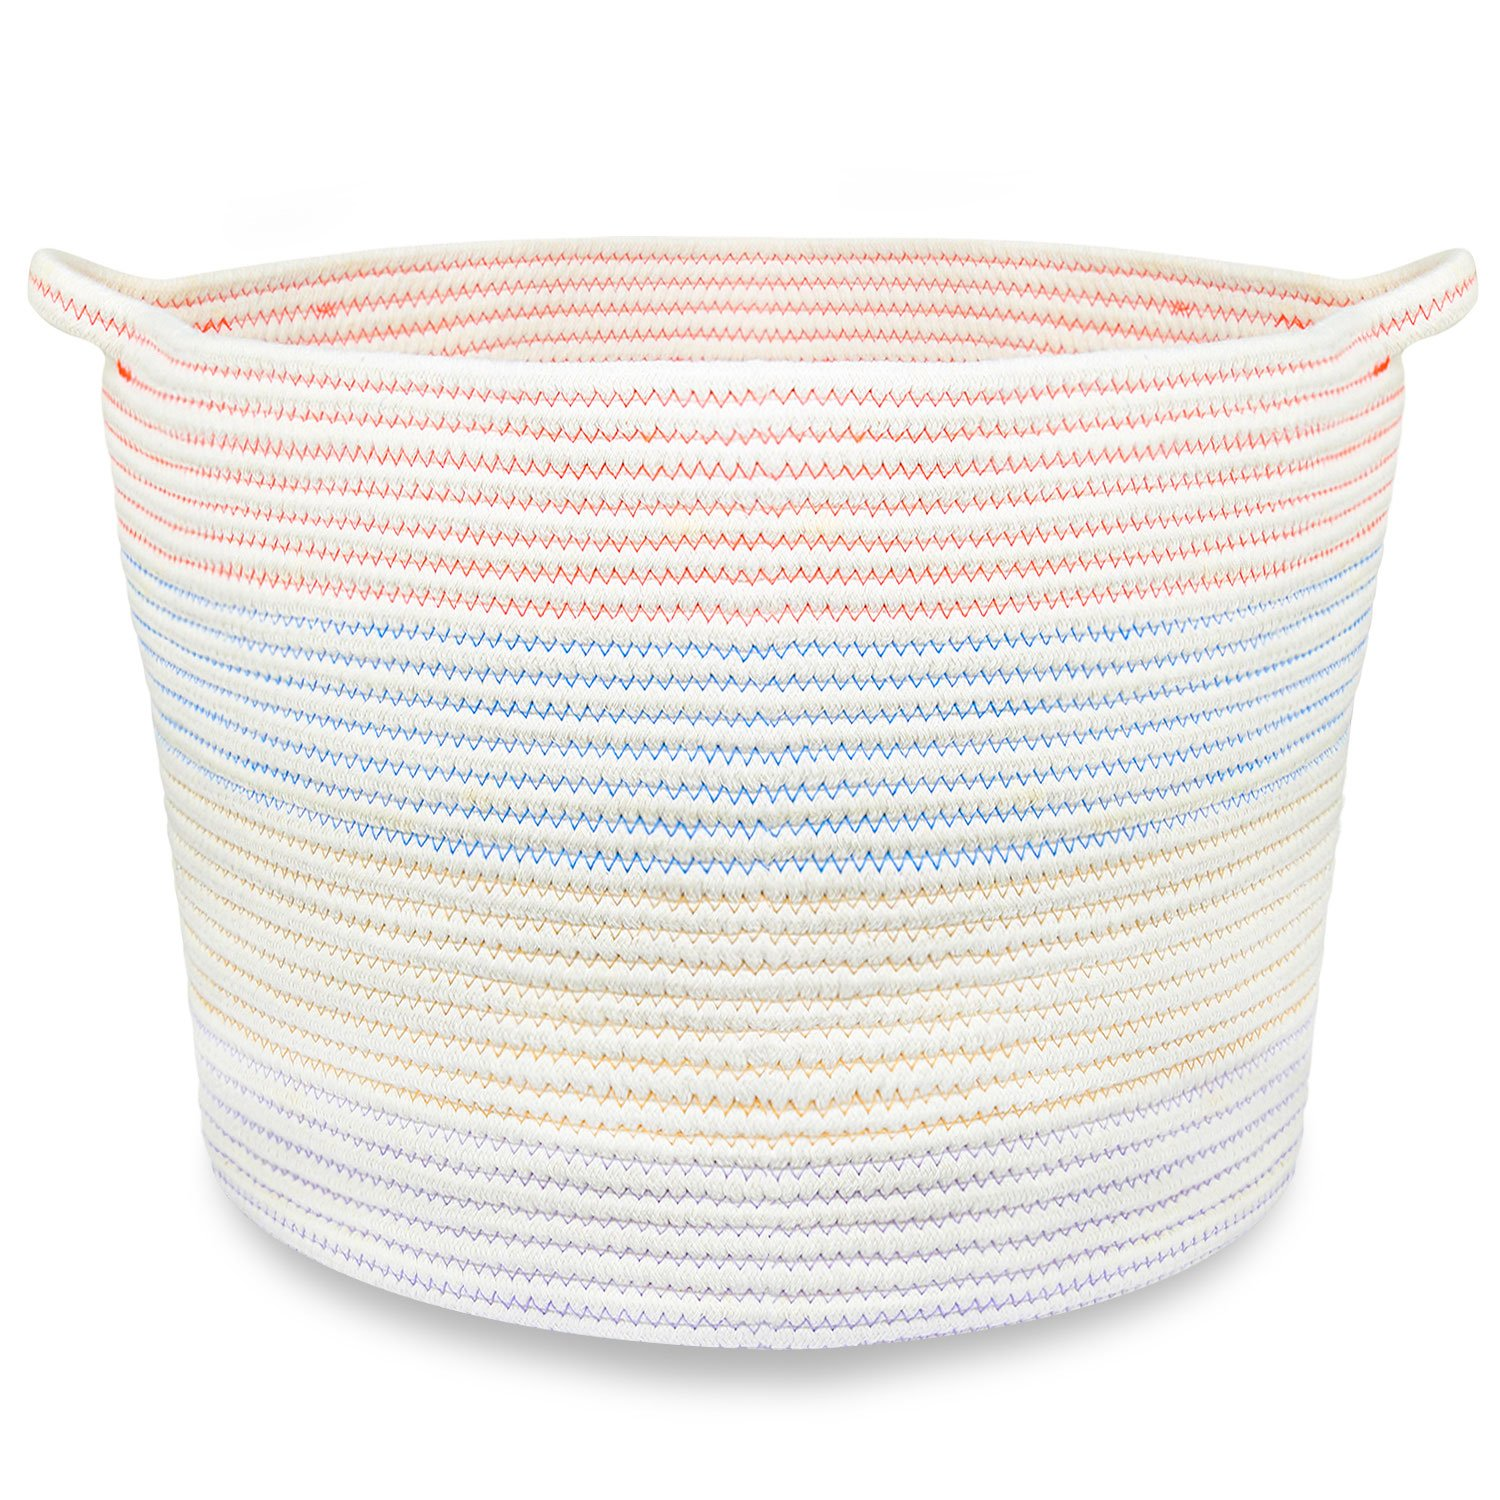 18 x 16 Extra Large Storage Baskets Cotton Rope Woven Nursery Bins, off white (XL) tao